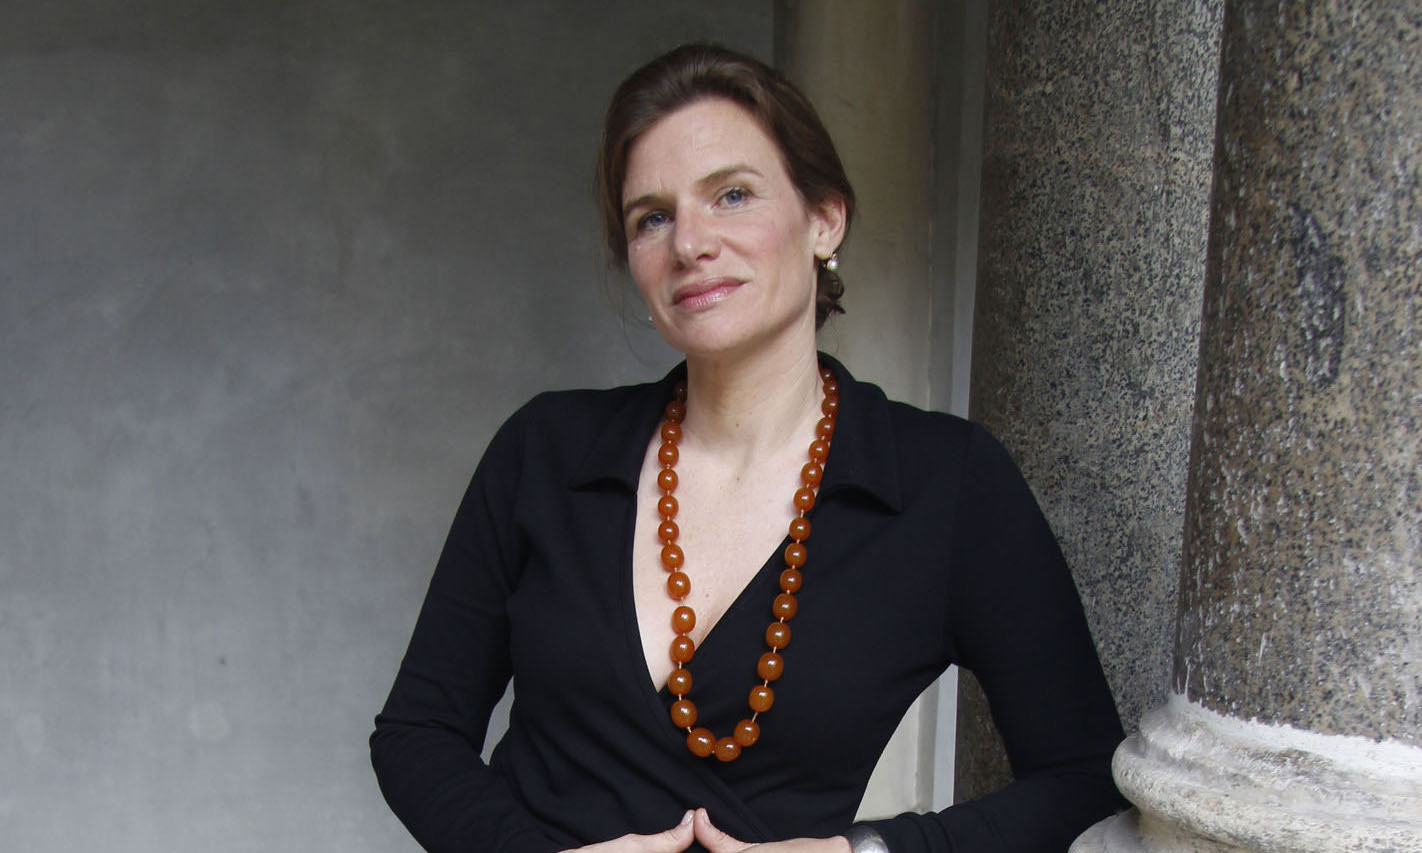 Professor Mariana Mazzucato to launch new Institute for Innovation and Public Purpose at UCL